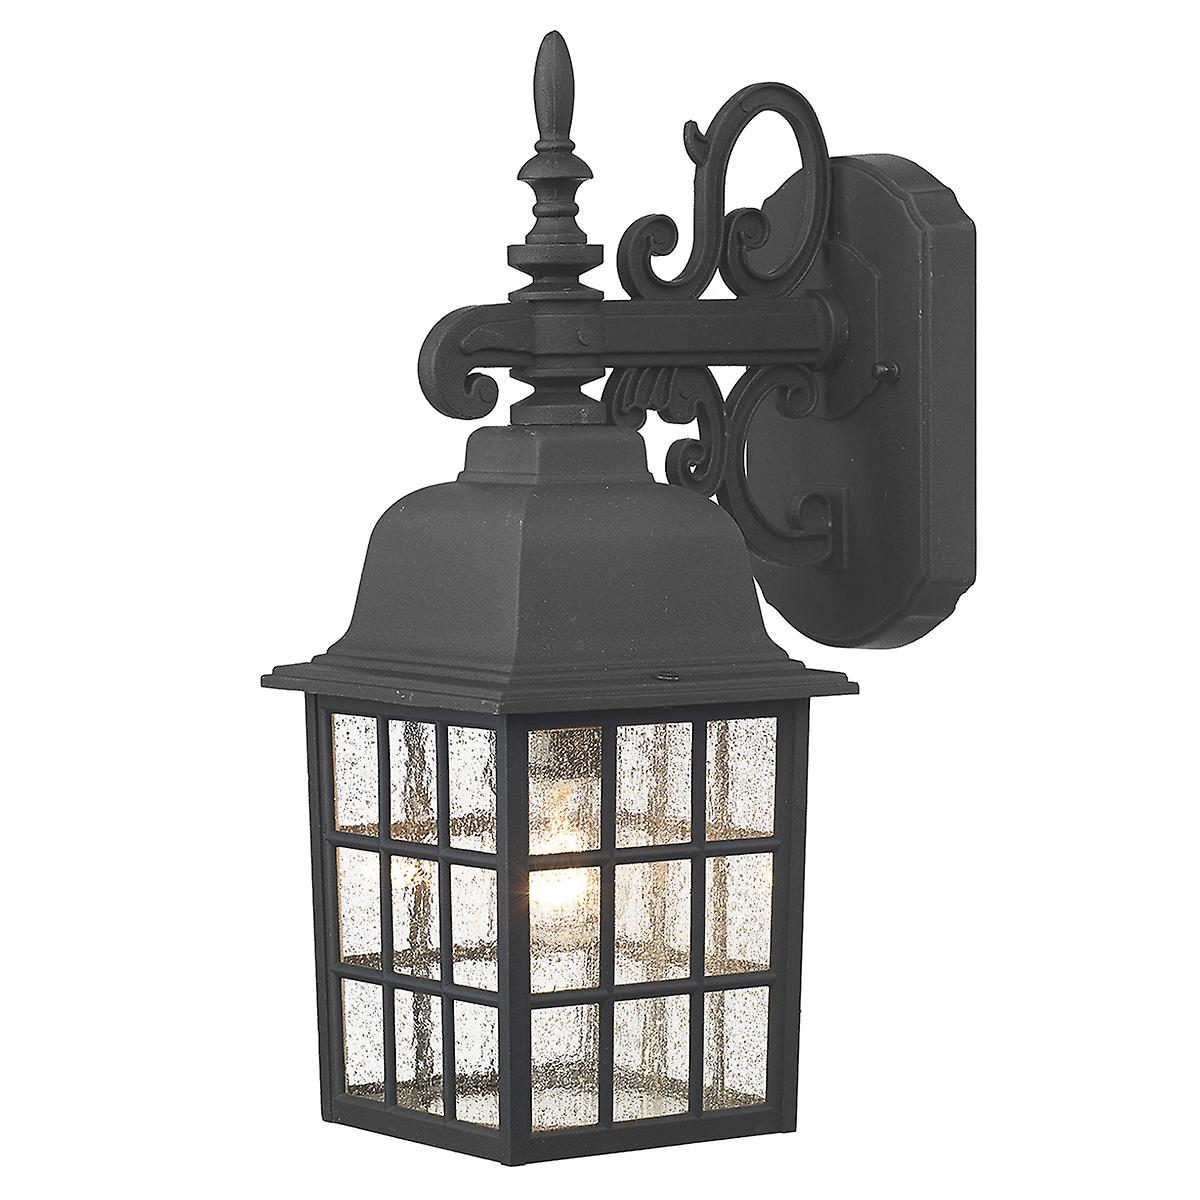 Dar NOR1522 Norfolk Wall Bracket Down Light Black